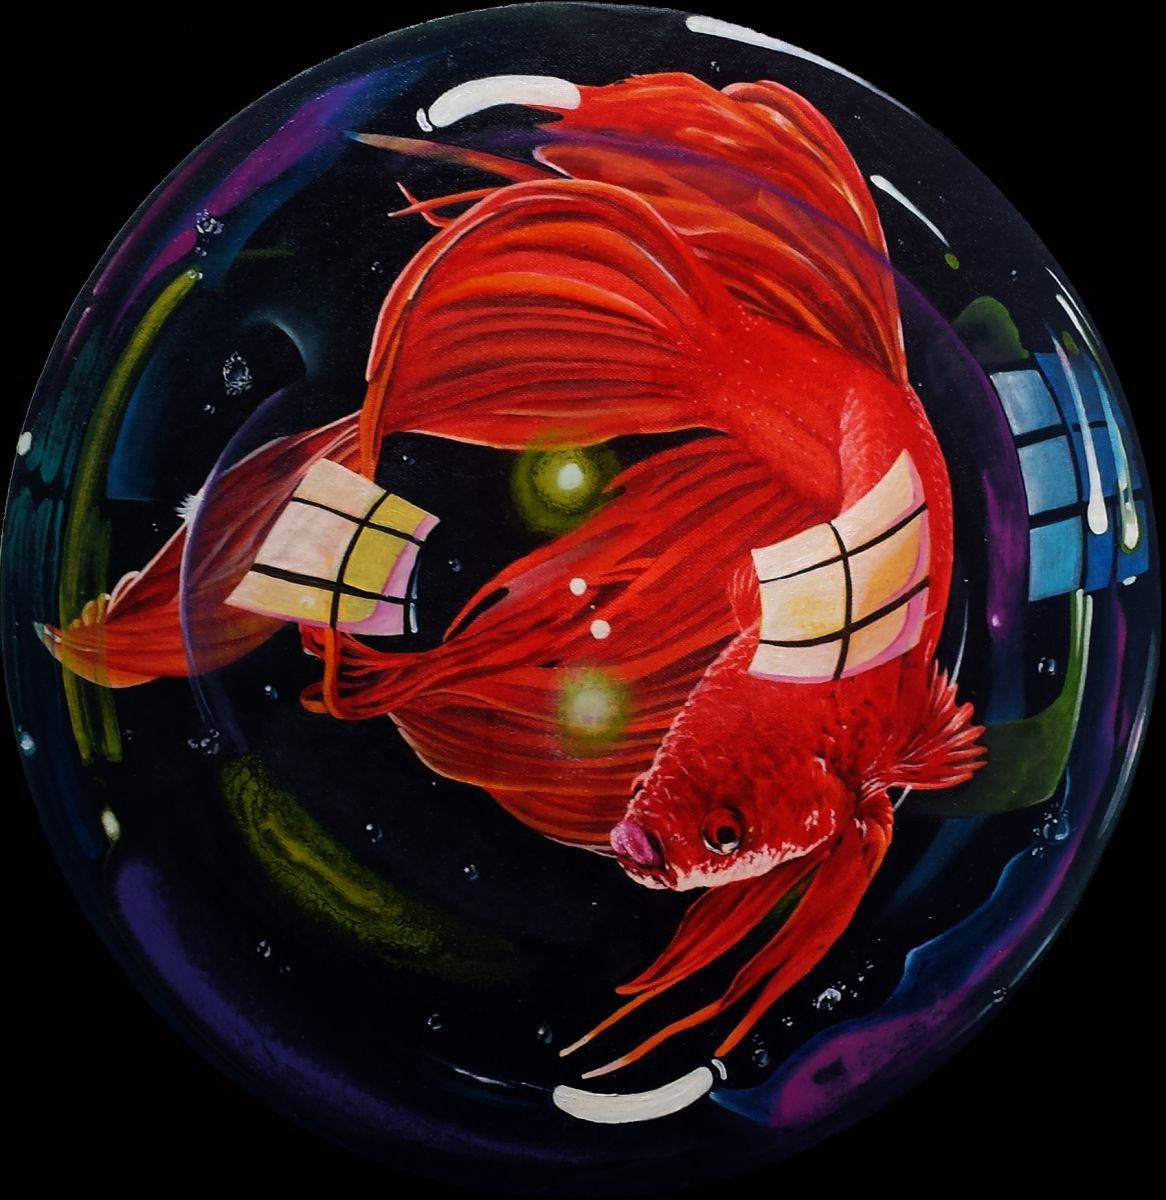 Betta fish 5 2016 oil painting by julian arsenie for Betta fish painting